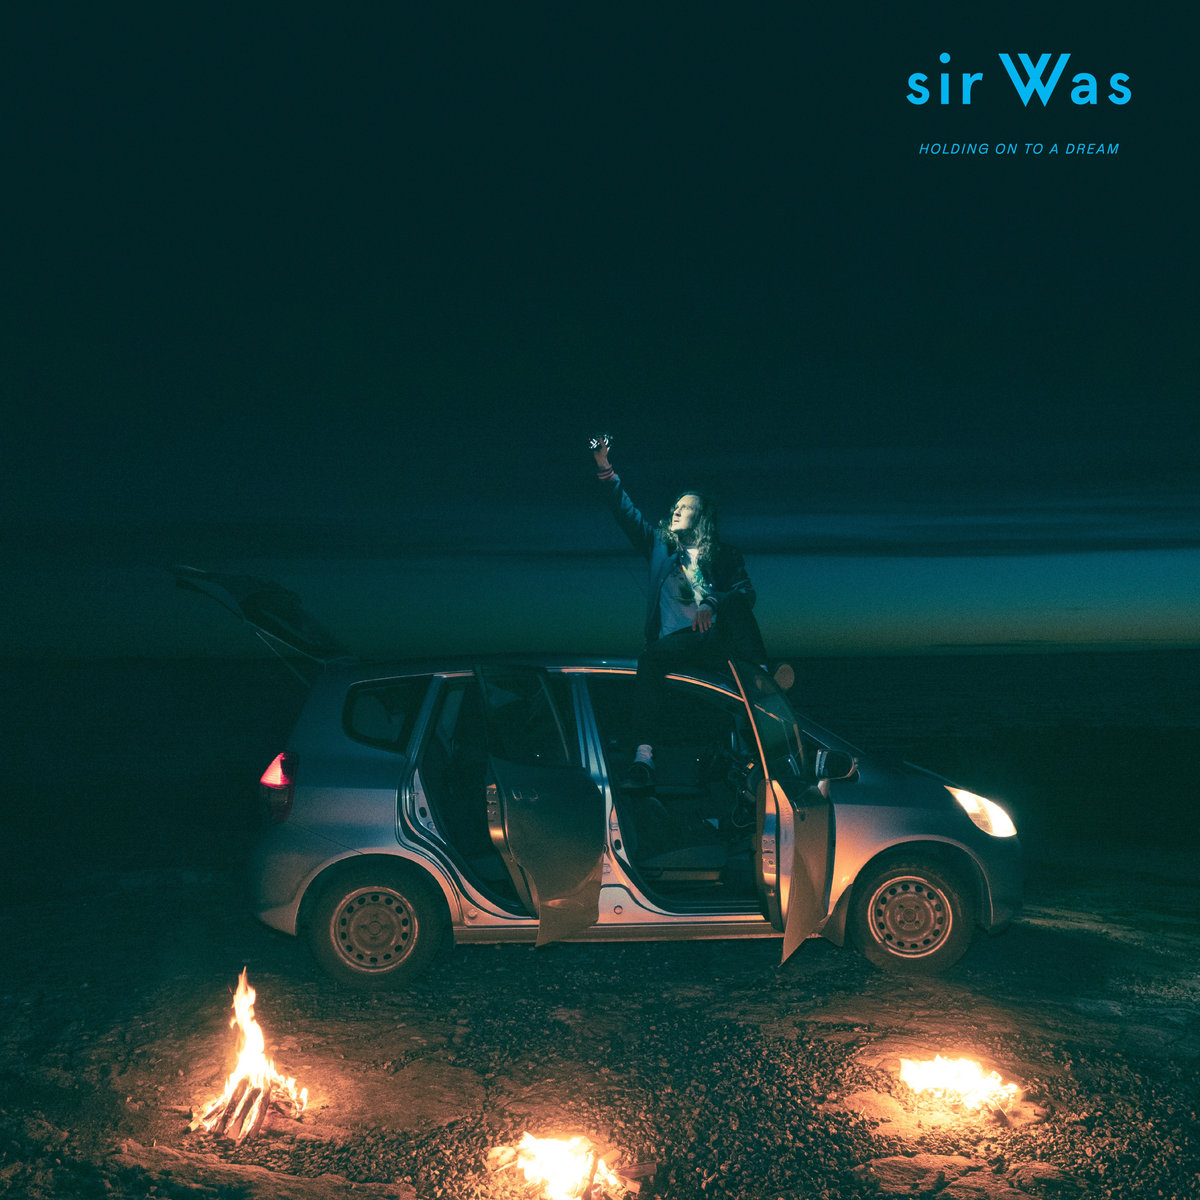 sirWas — Holding On To A Dream - Memphis Industries, Sep. 2019